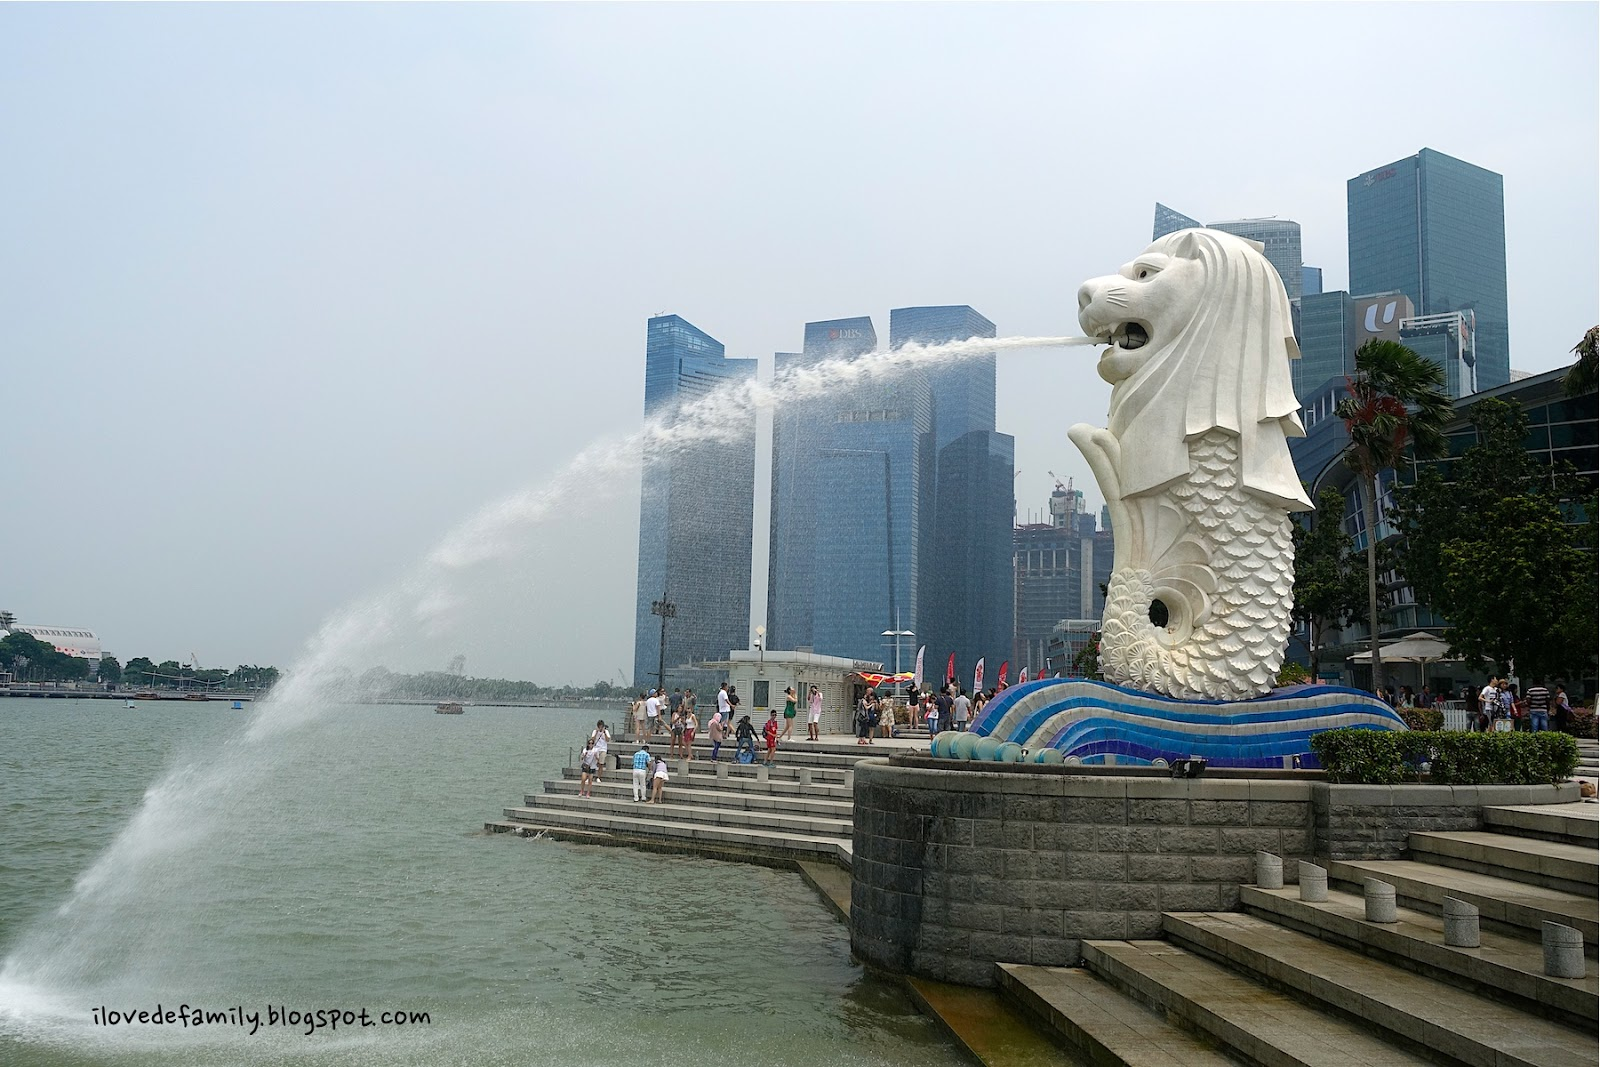 B C D E That 39 S Us Merlion Park And More